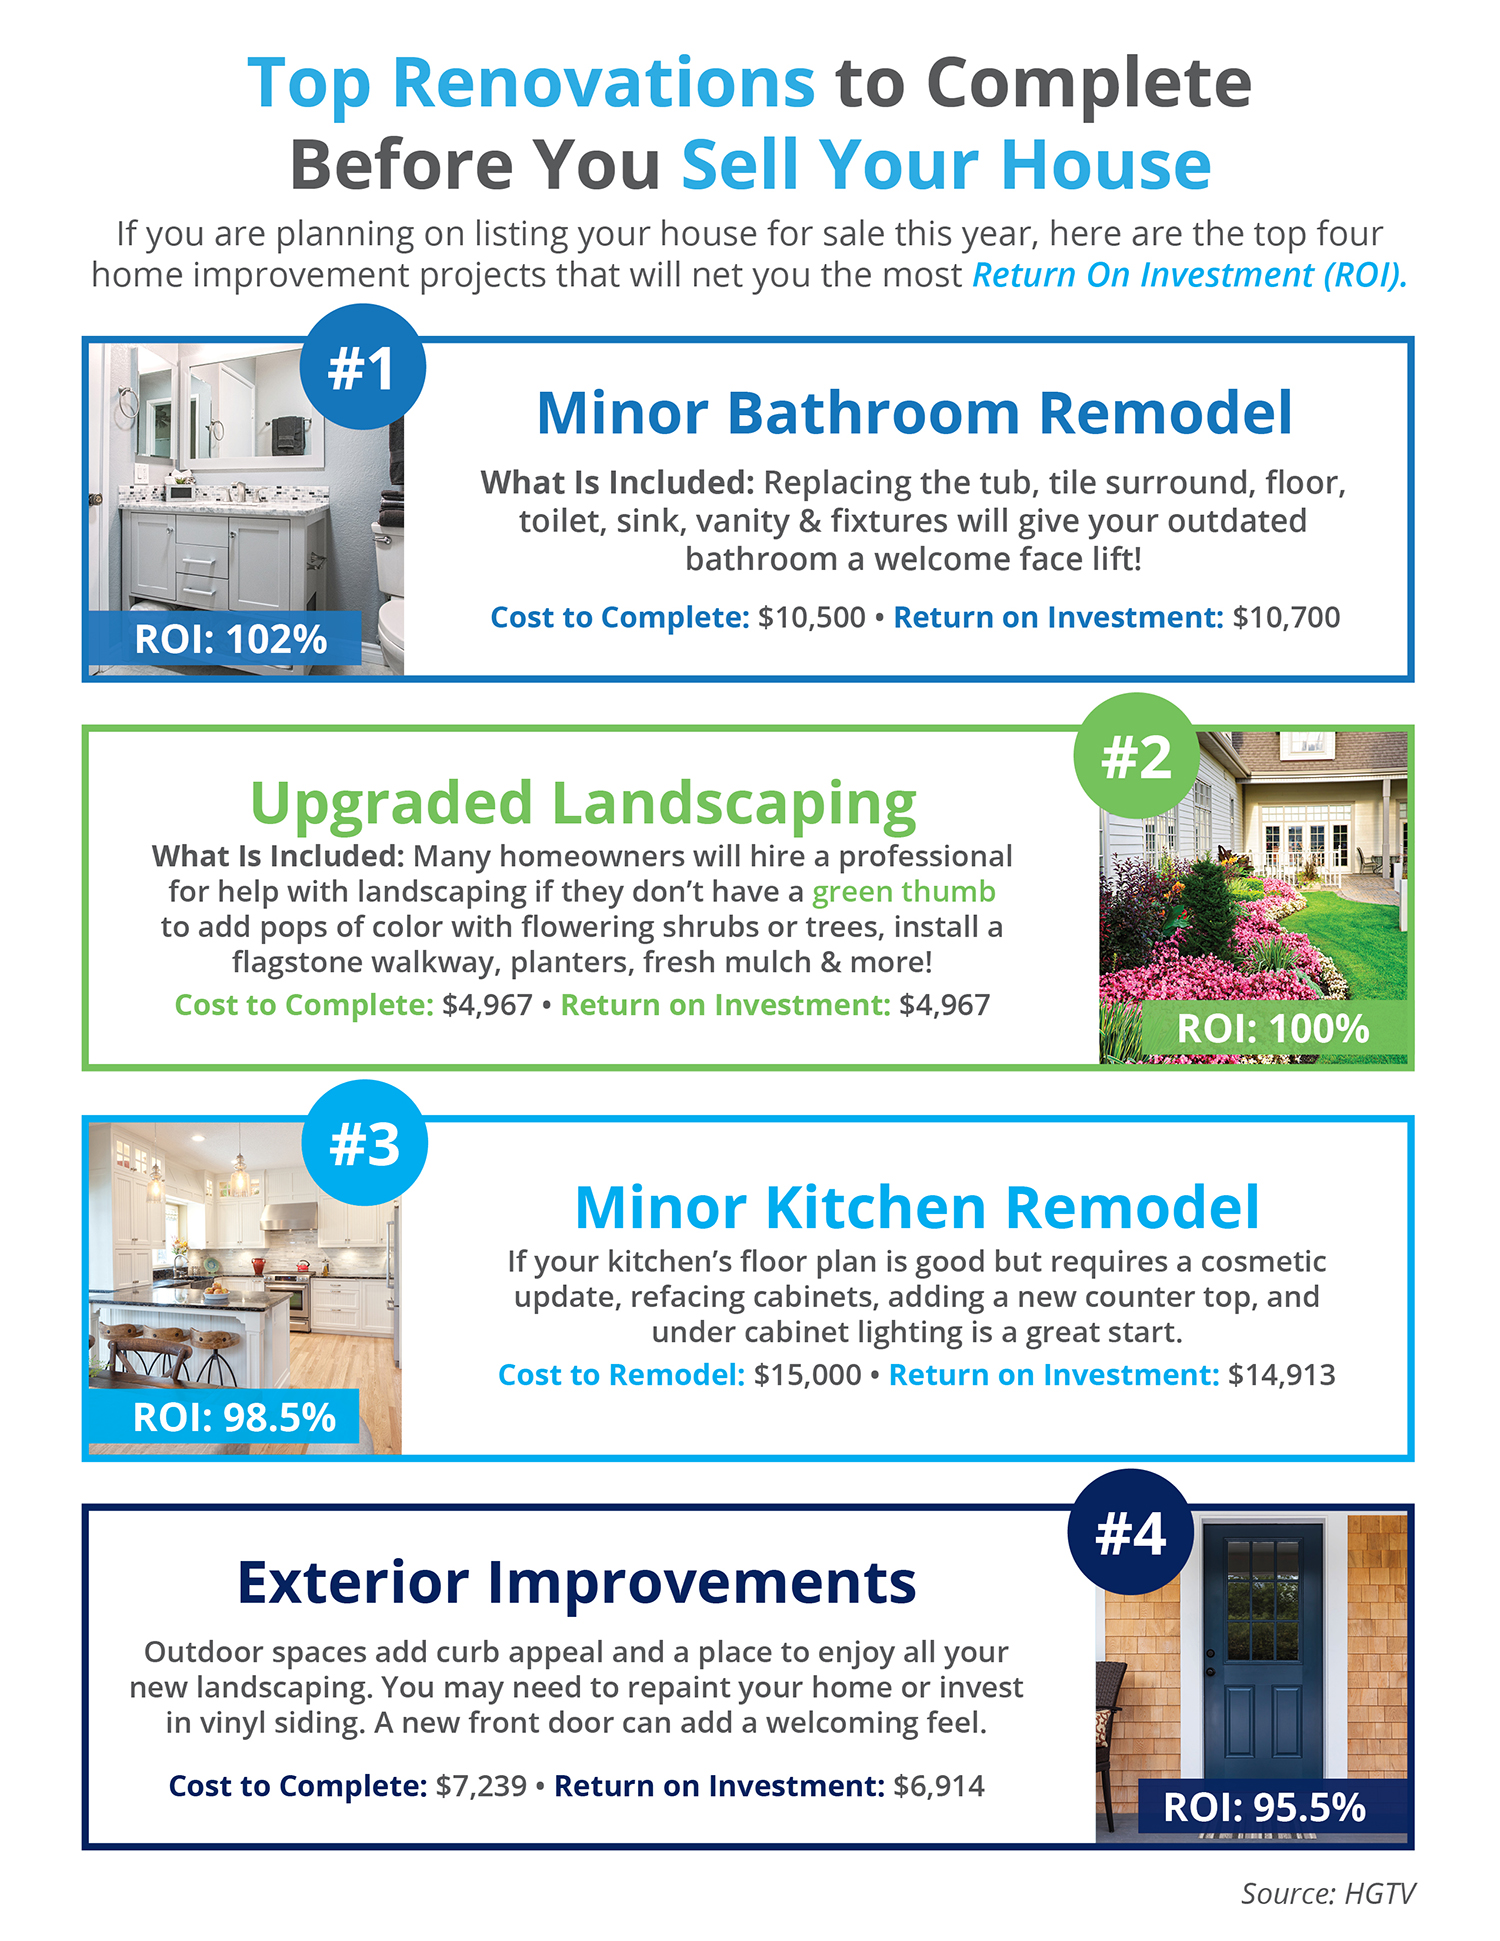 Top Renovations To Complete Before You Your House